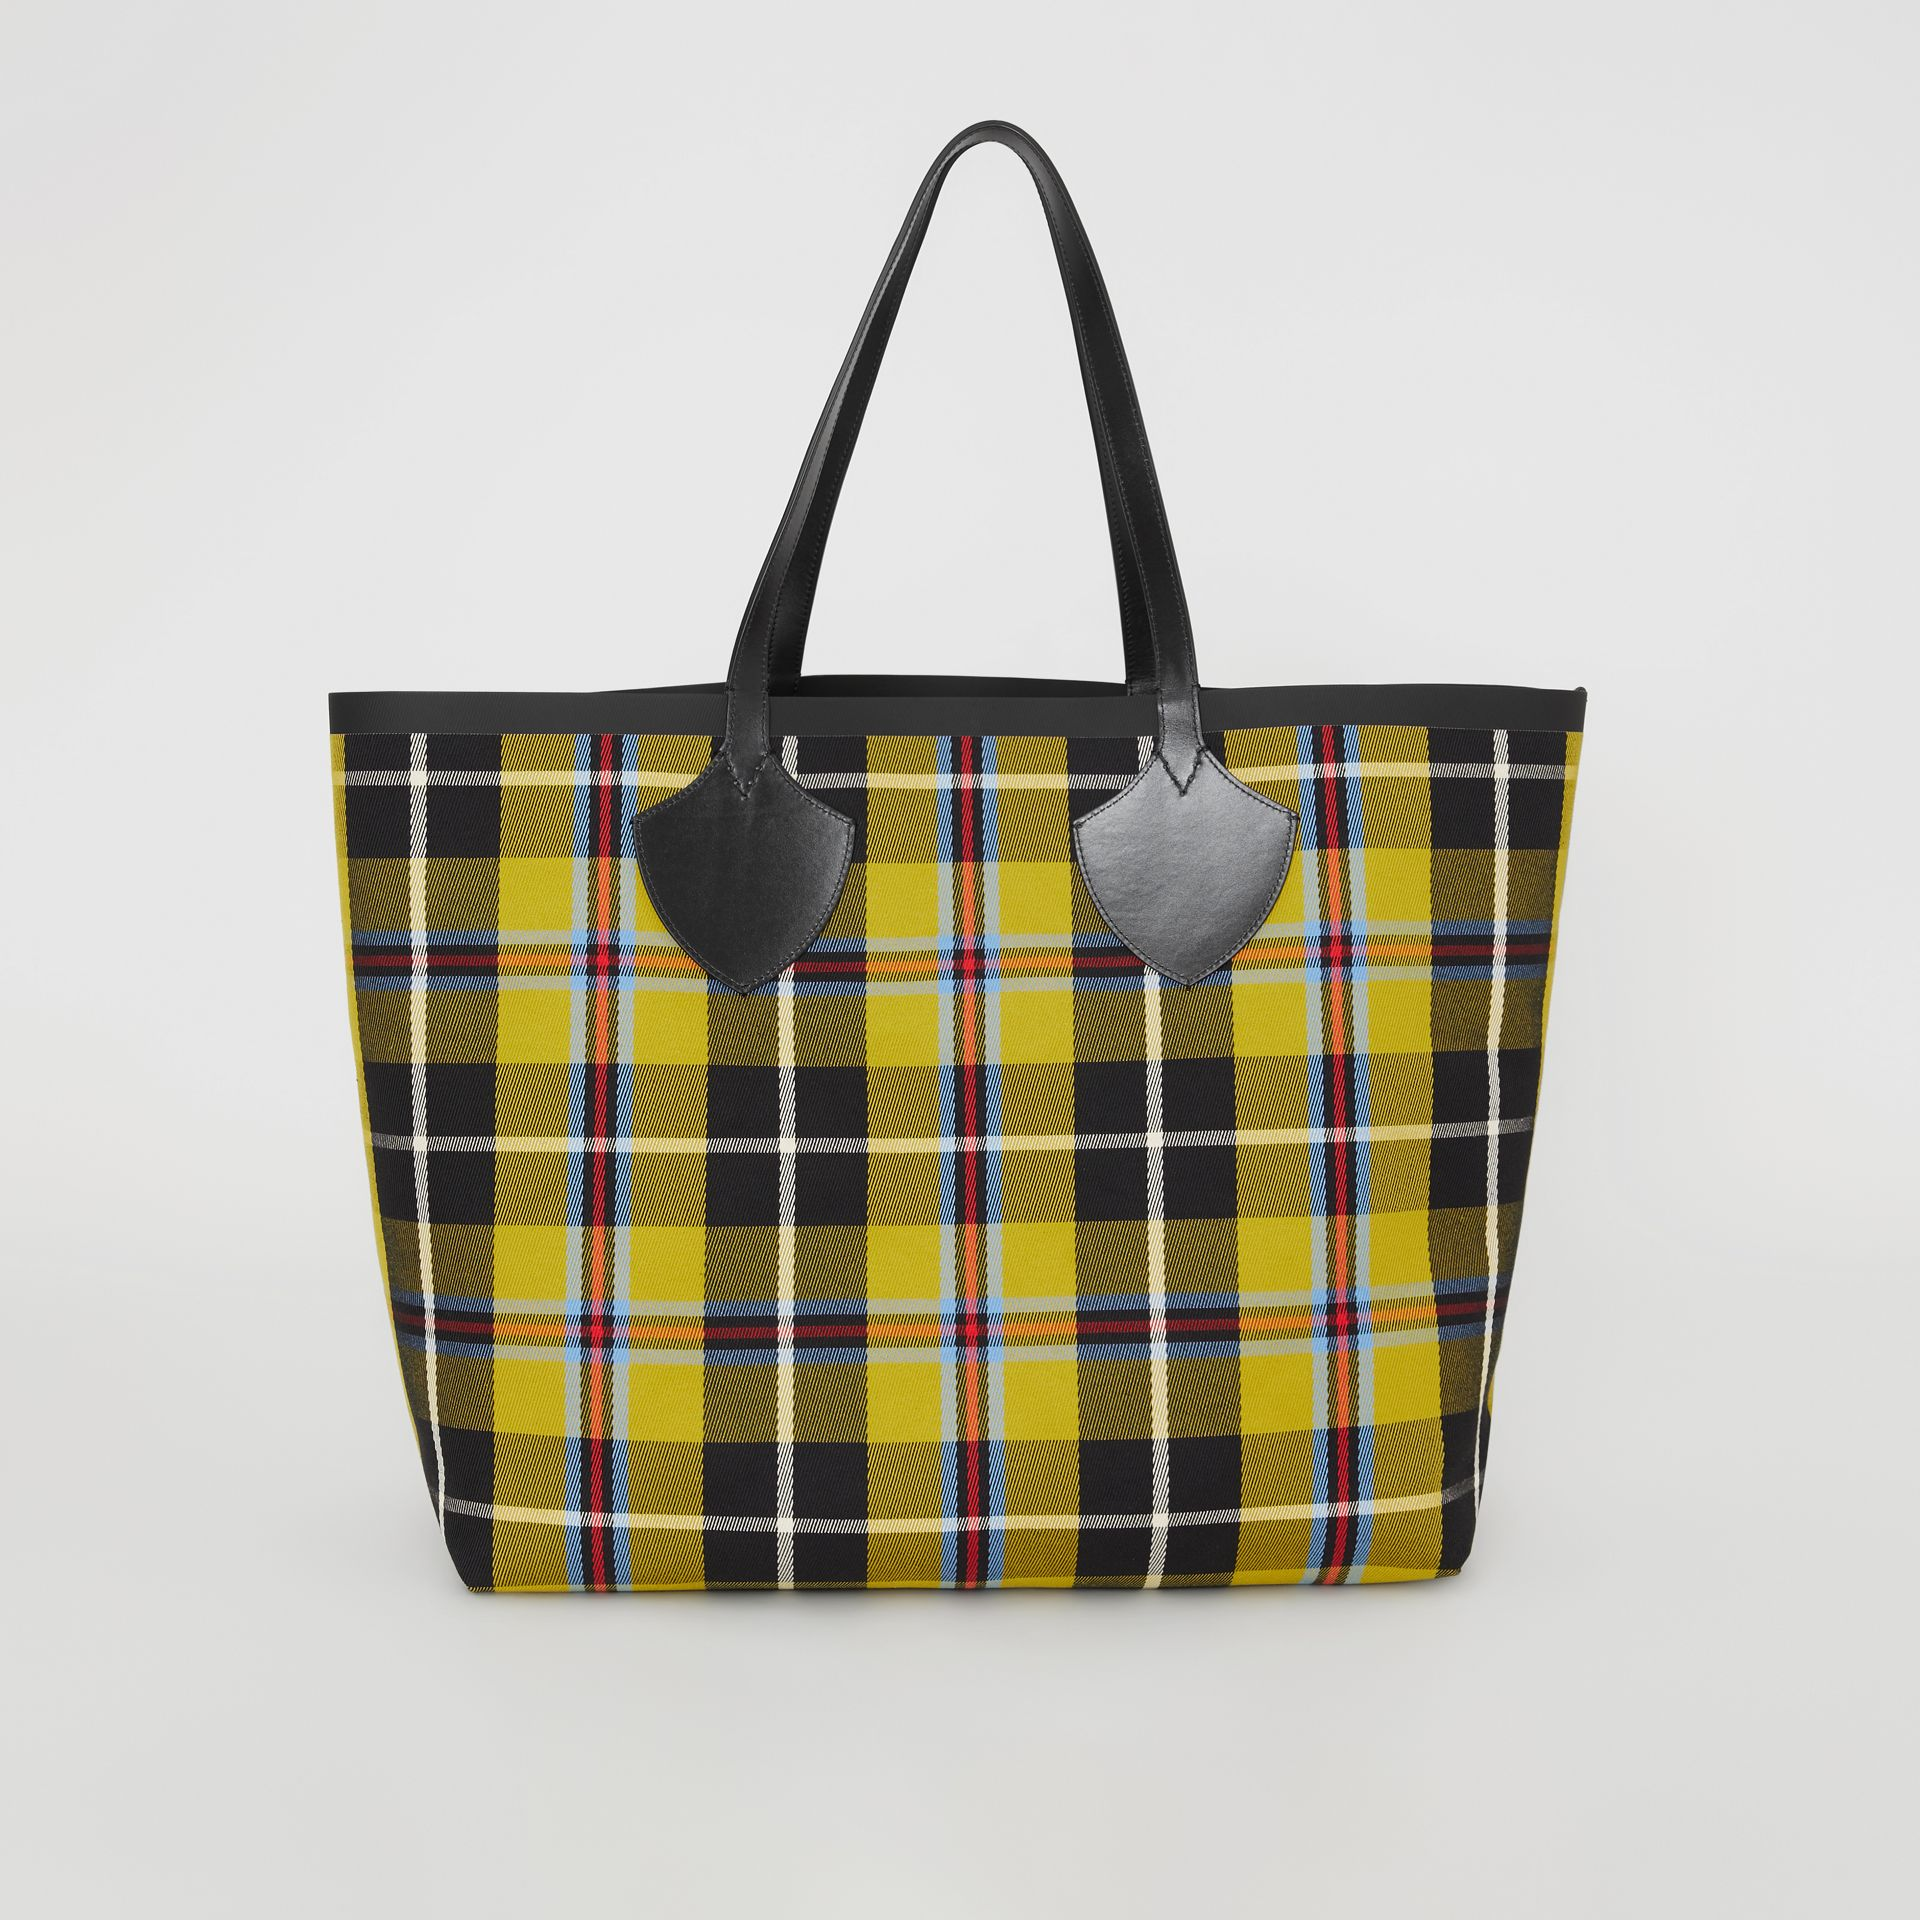 Sac tote The Giant réversible en coton à motif Vintage check (Jaune Antique) | Burberry - photo de la galerie 7